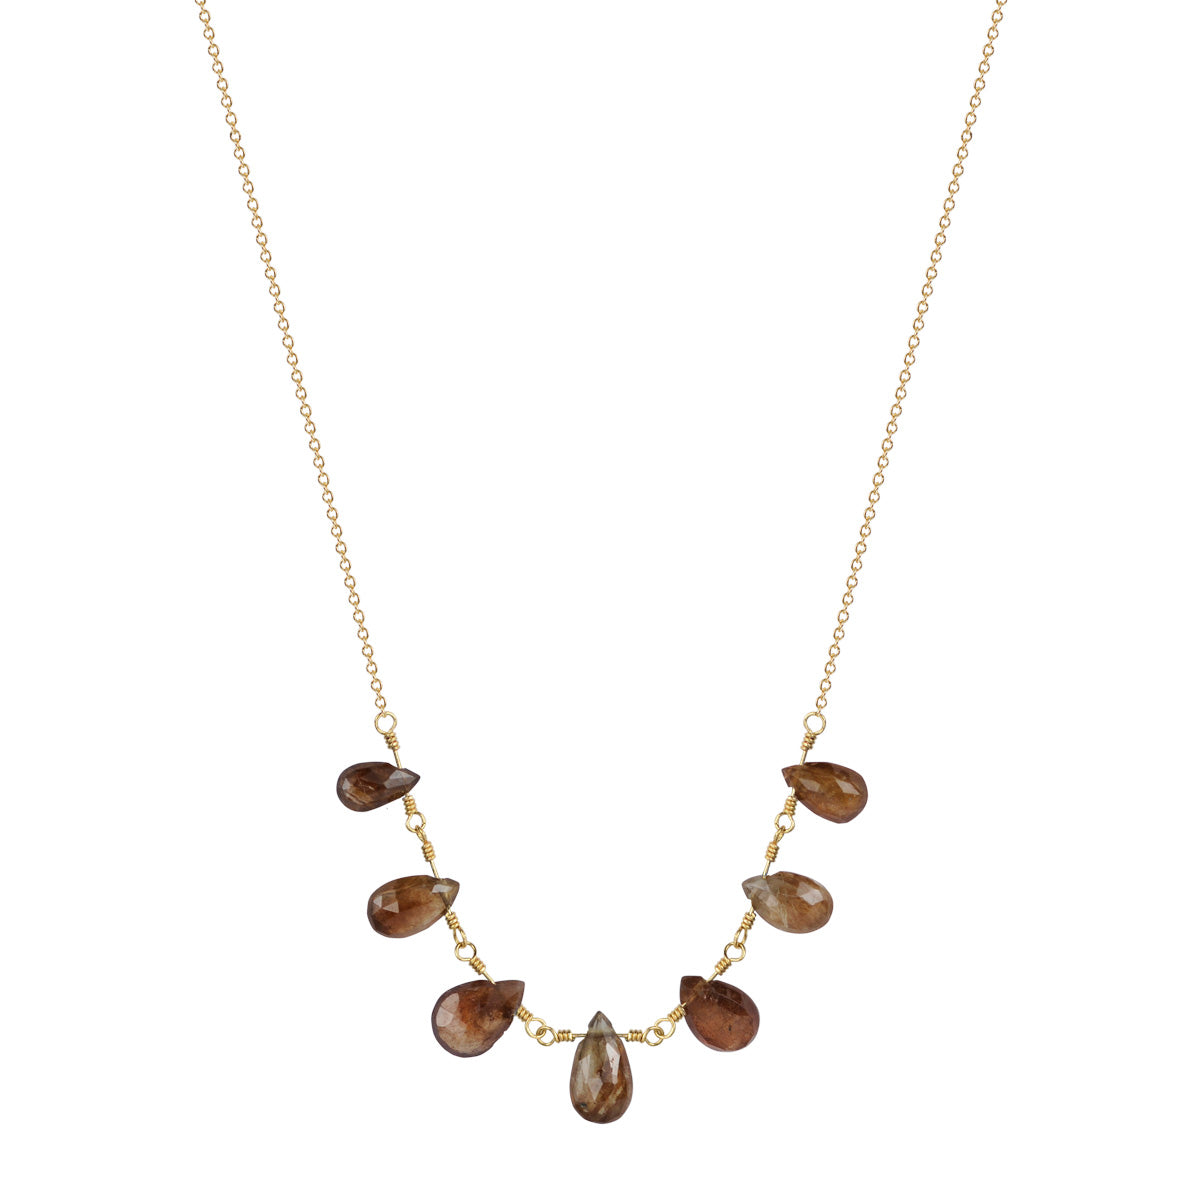 18K Gold 7 Teardrop Burnt Orange Sapphire Necklace